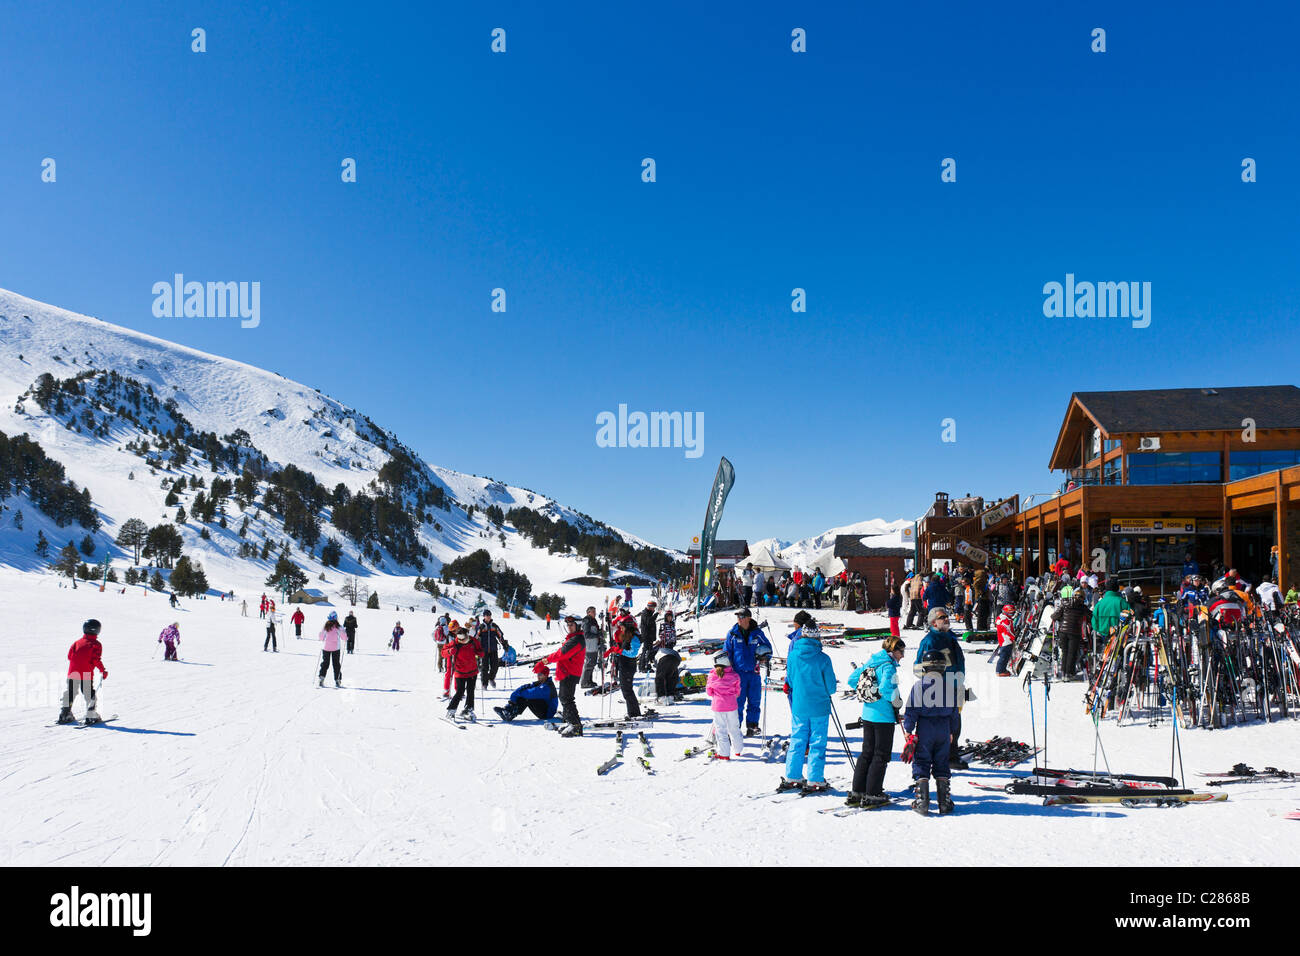 Bottom of the slopes in the Espiolets ski area, Soldeu, Grandvalira Region, Andorra - Stock Image